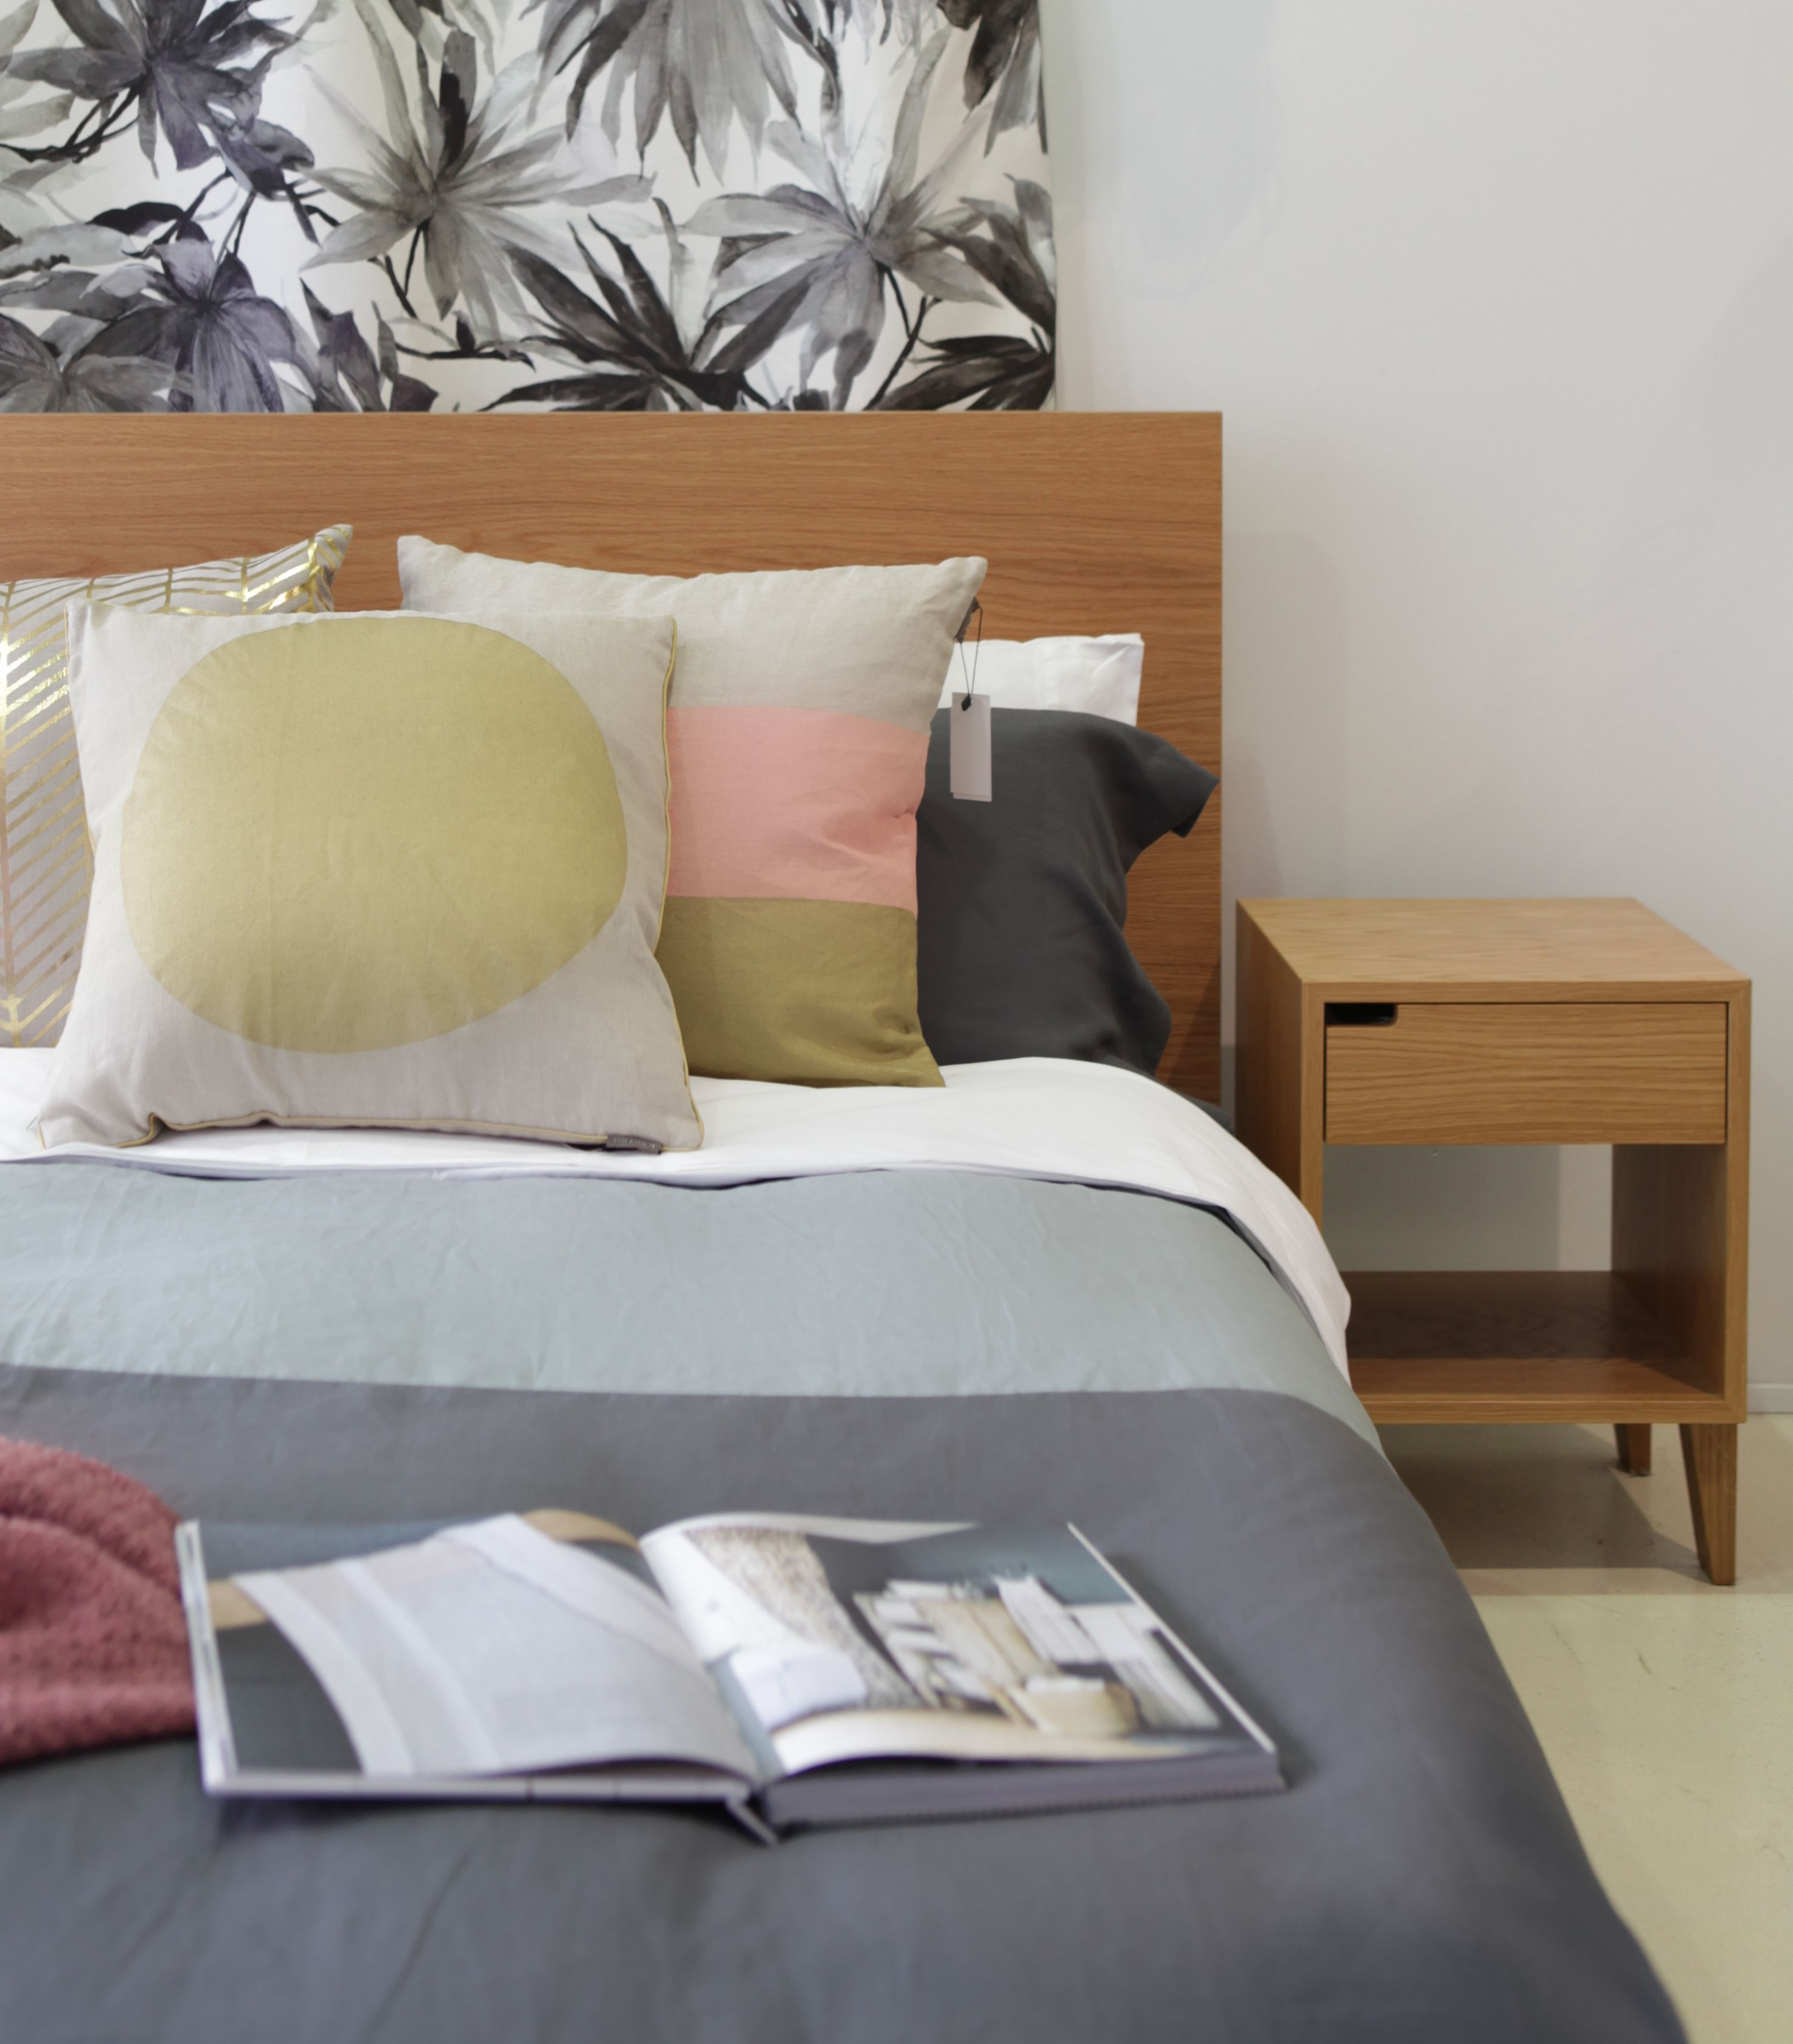 Be bedside table and bed - Nz Made Bed Bedside Table With Thread Design Duvet And Aura Home Cushions